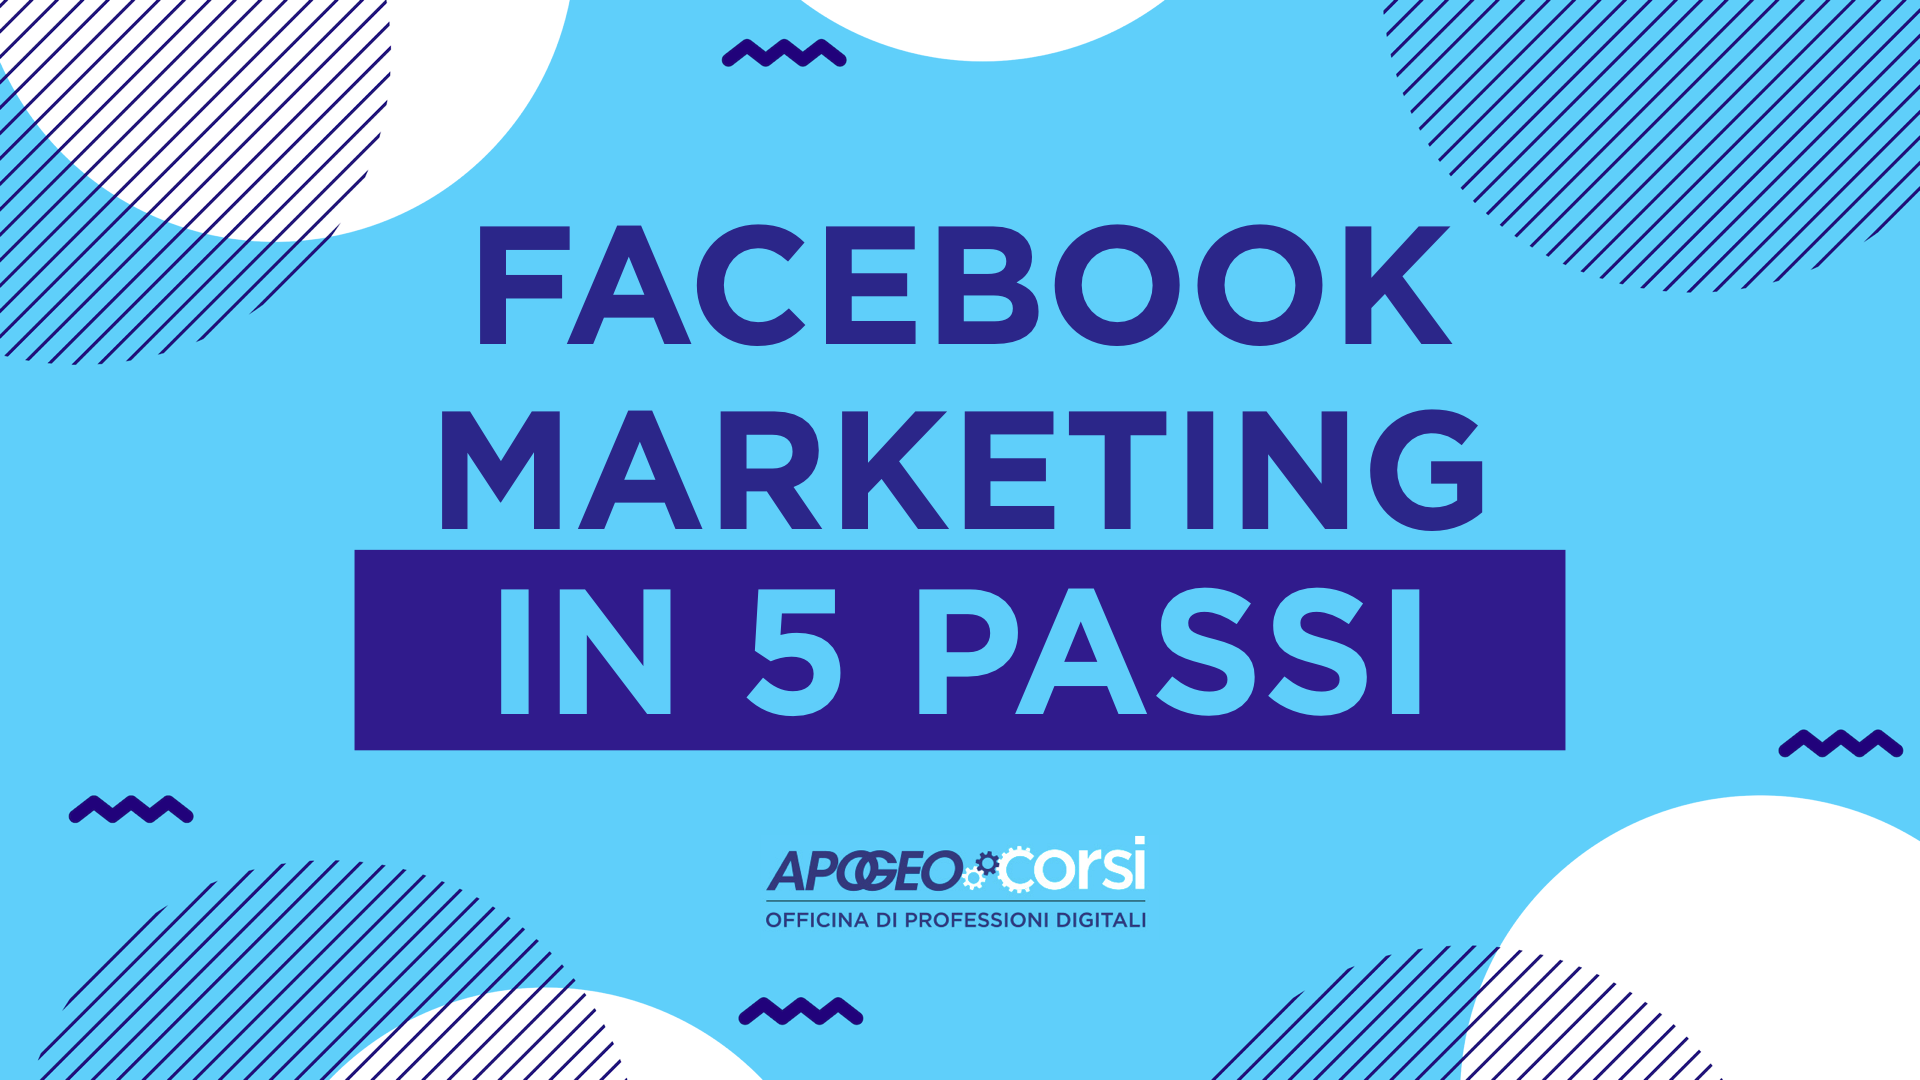 Facebook marketing in 5 pass